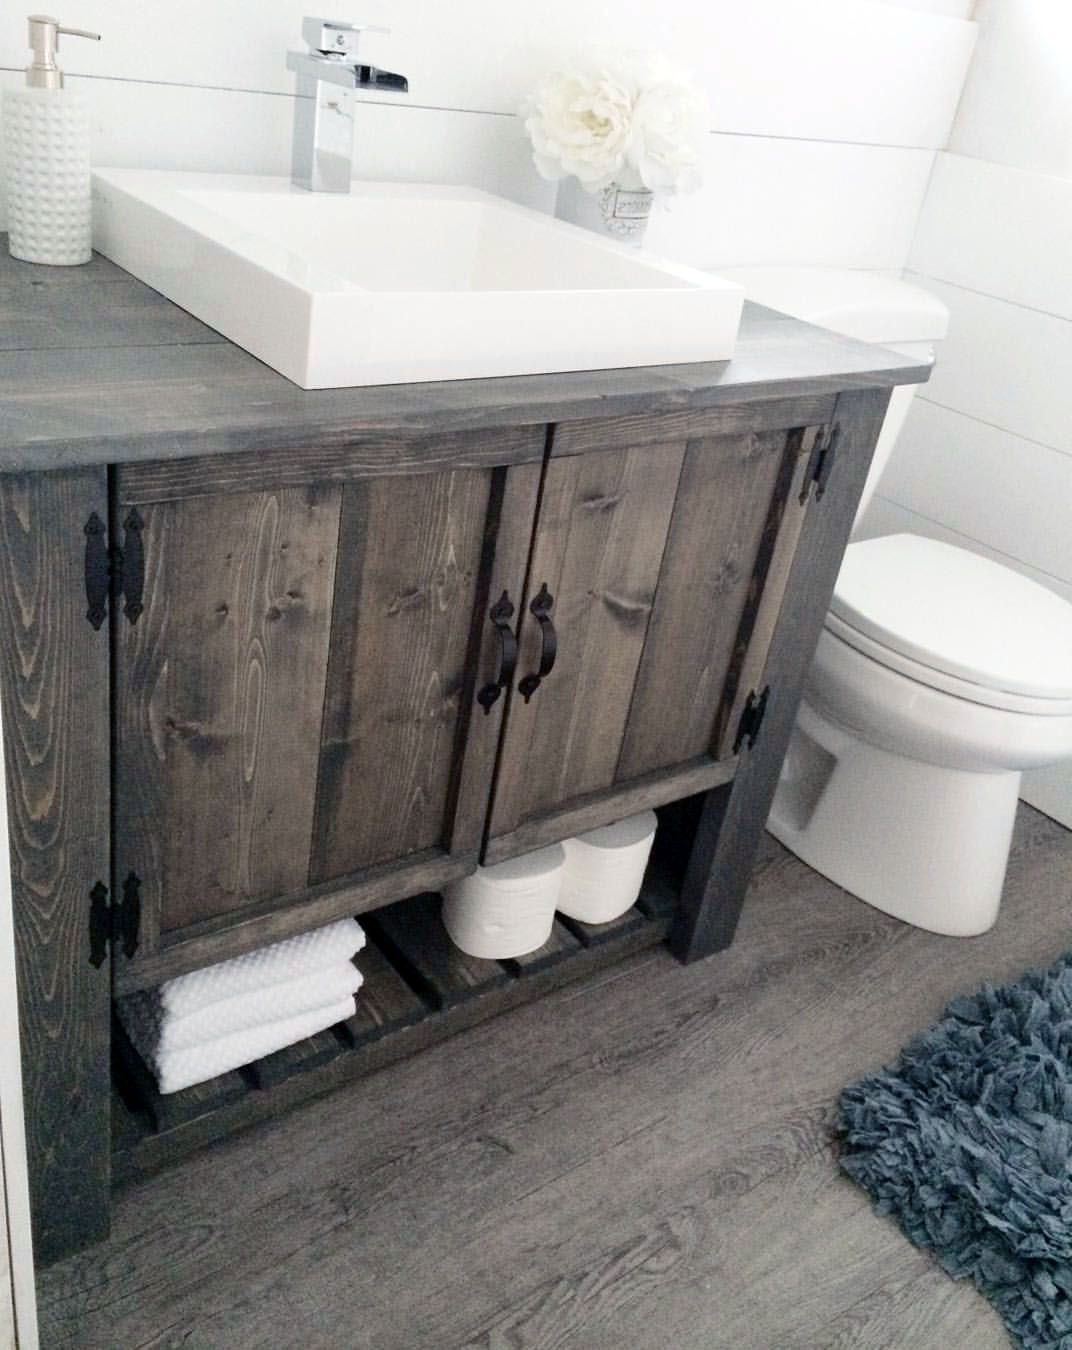 Design Tips To Create A Small Restroom Much Better Bathroom